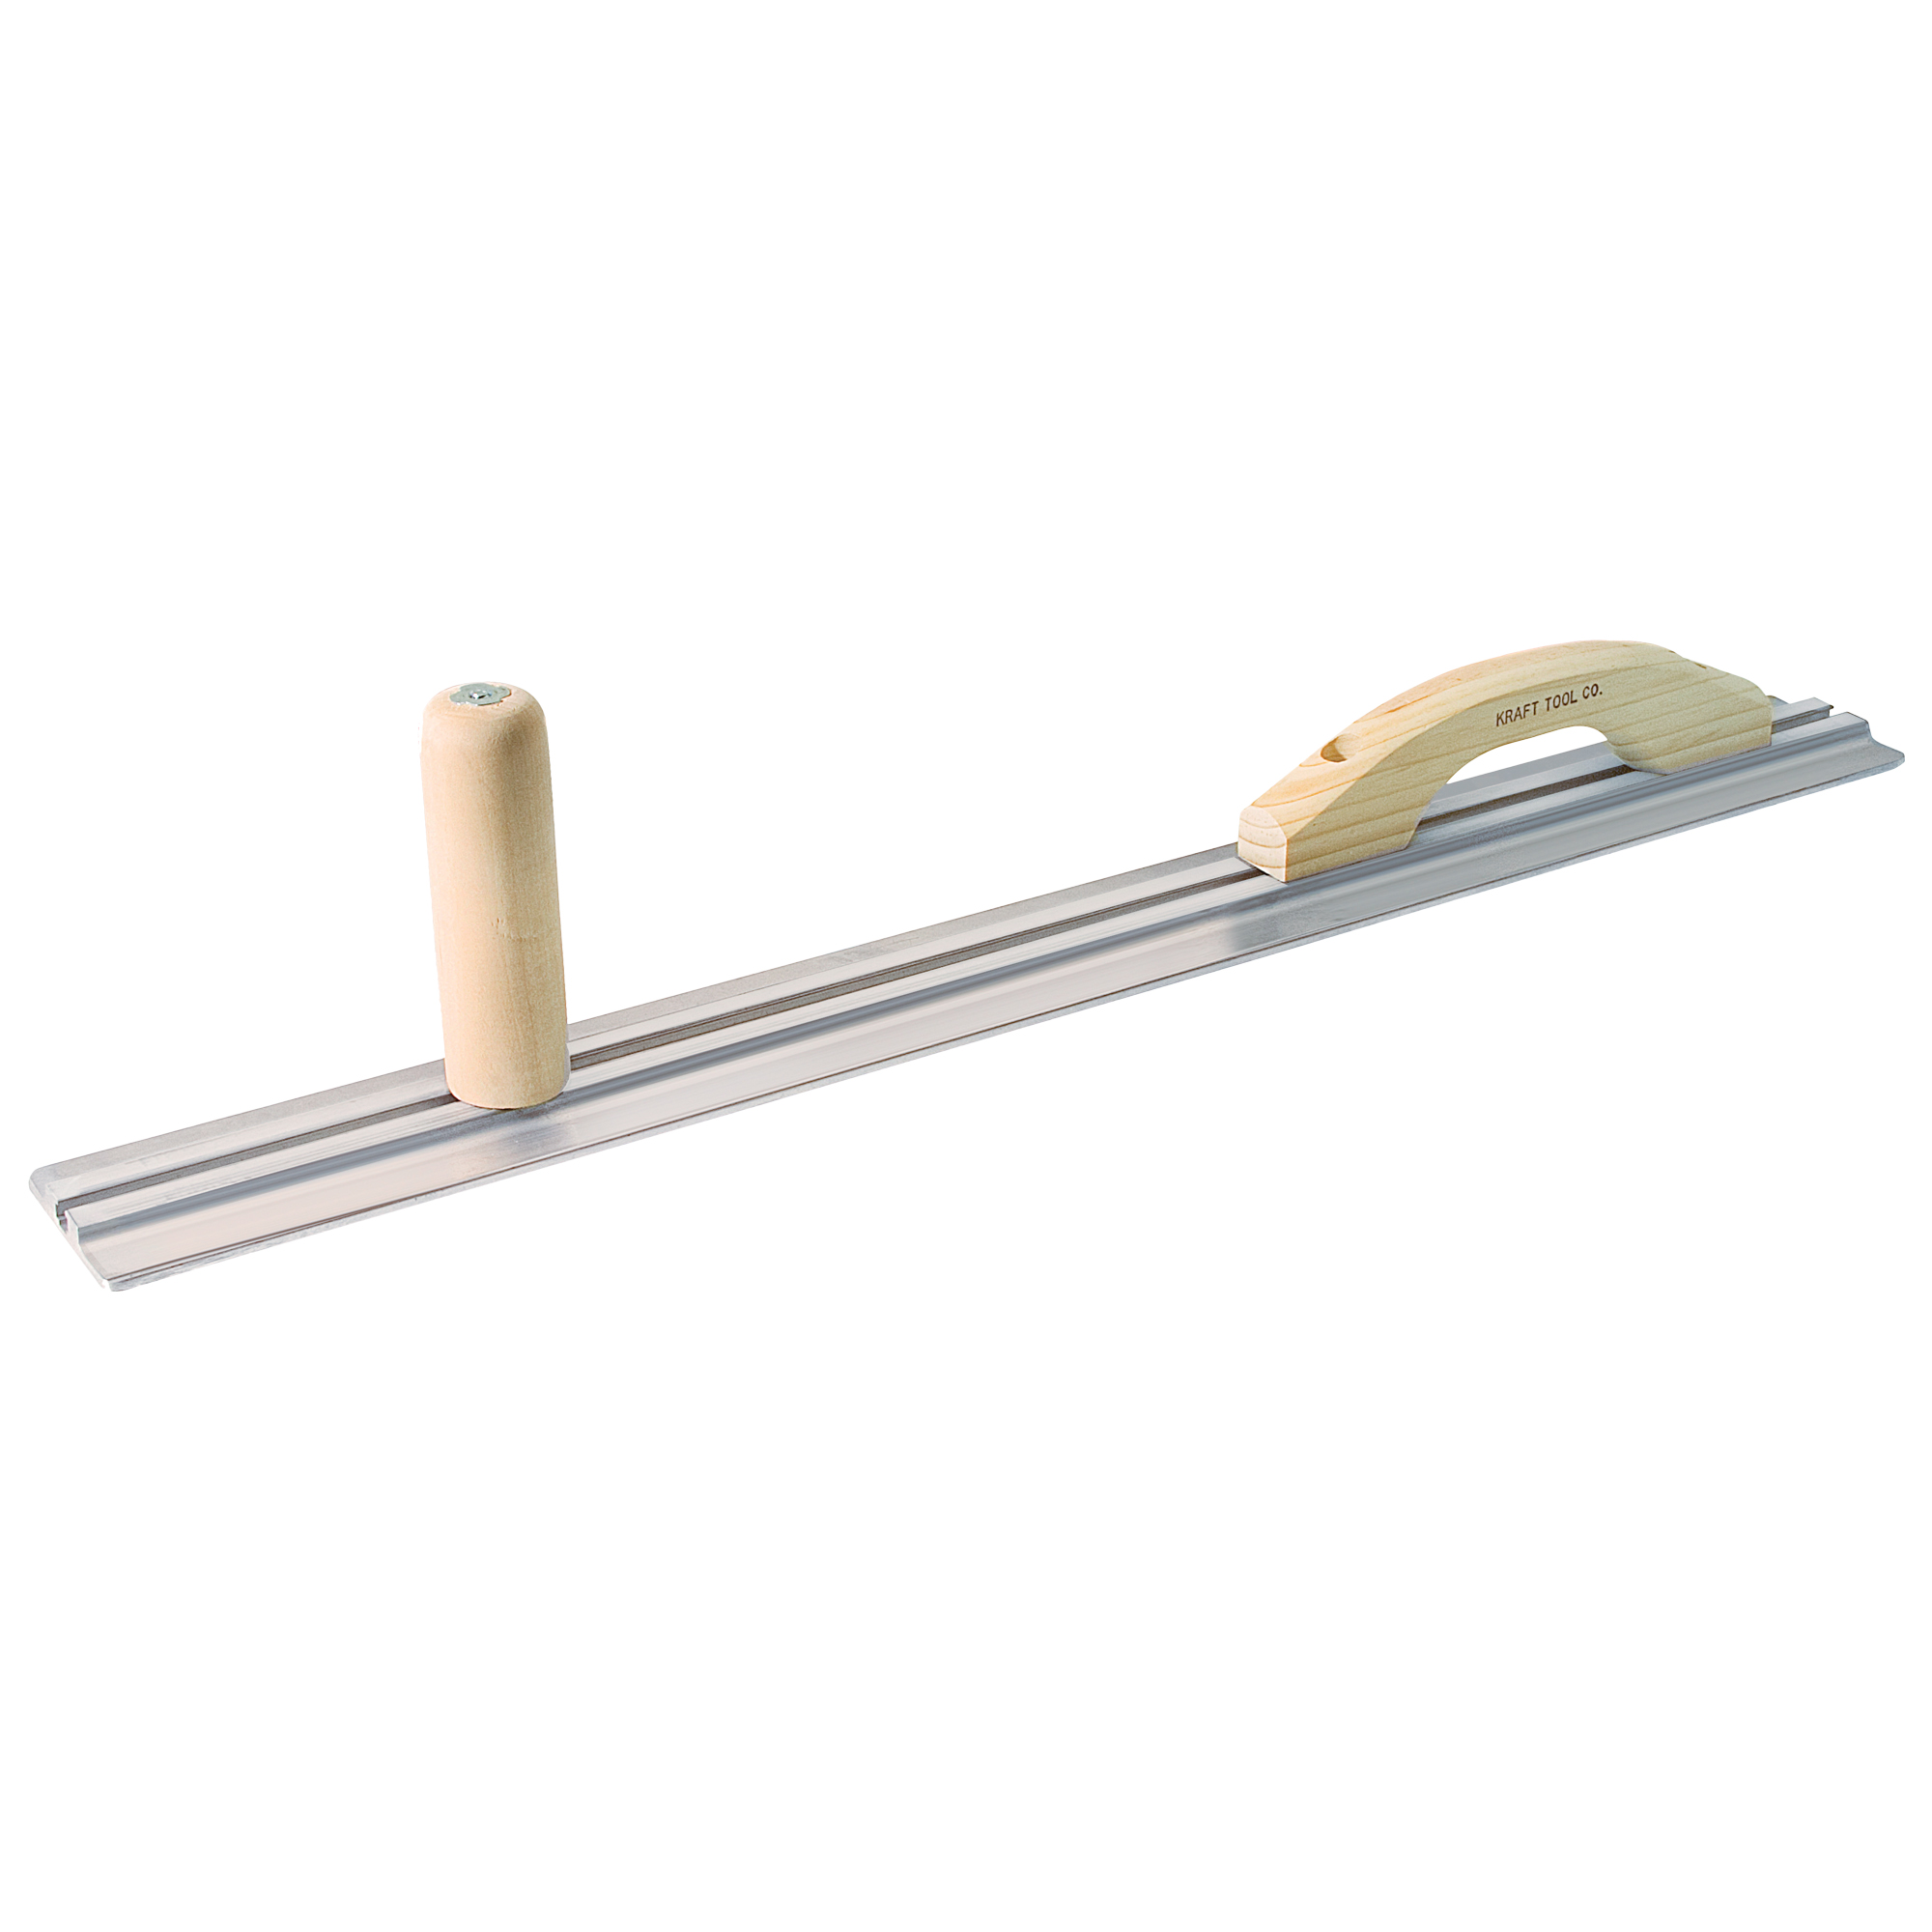 30inch X3-1/4inch Magnesium Darby With 1 Knob & 1 Wood Handle - Cf032 - Tools Straight Edges Concrete CF032